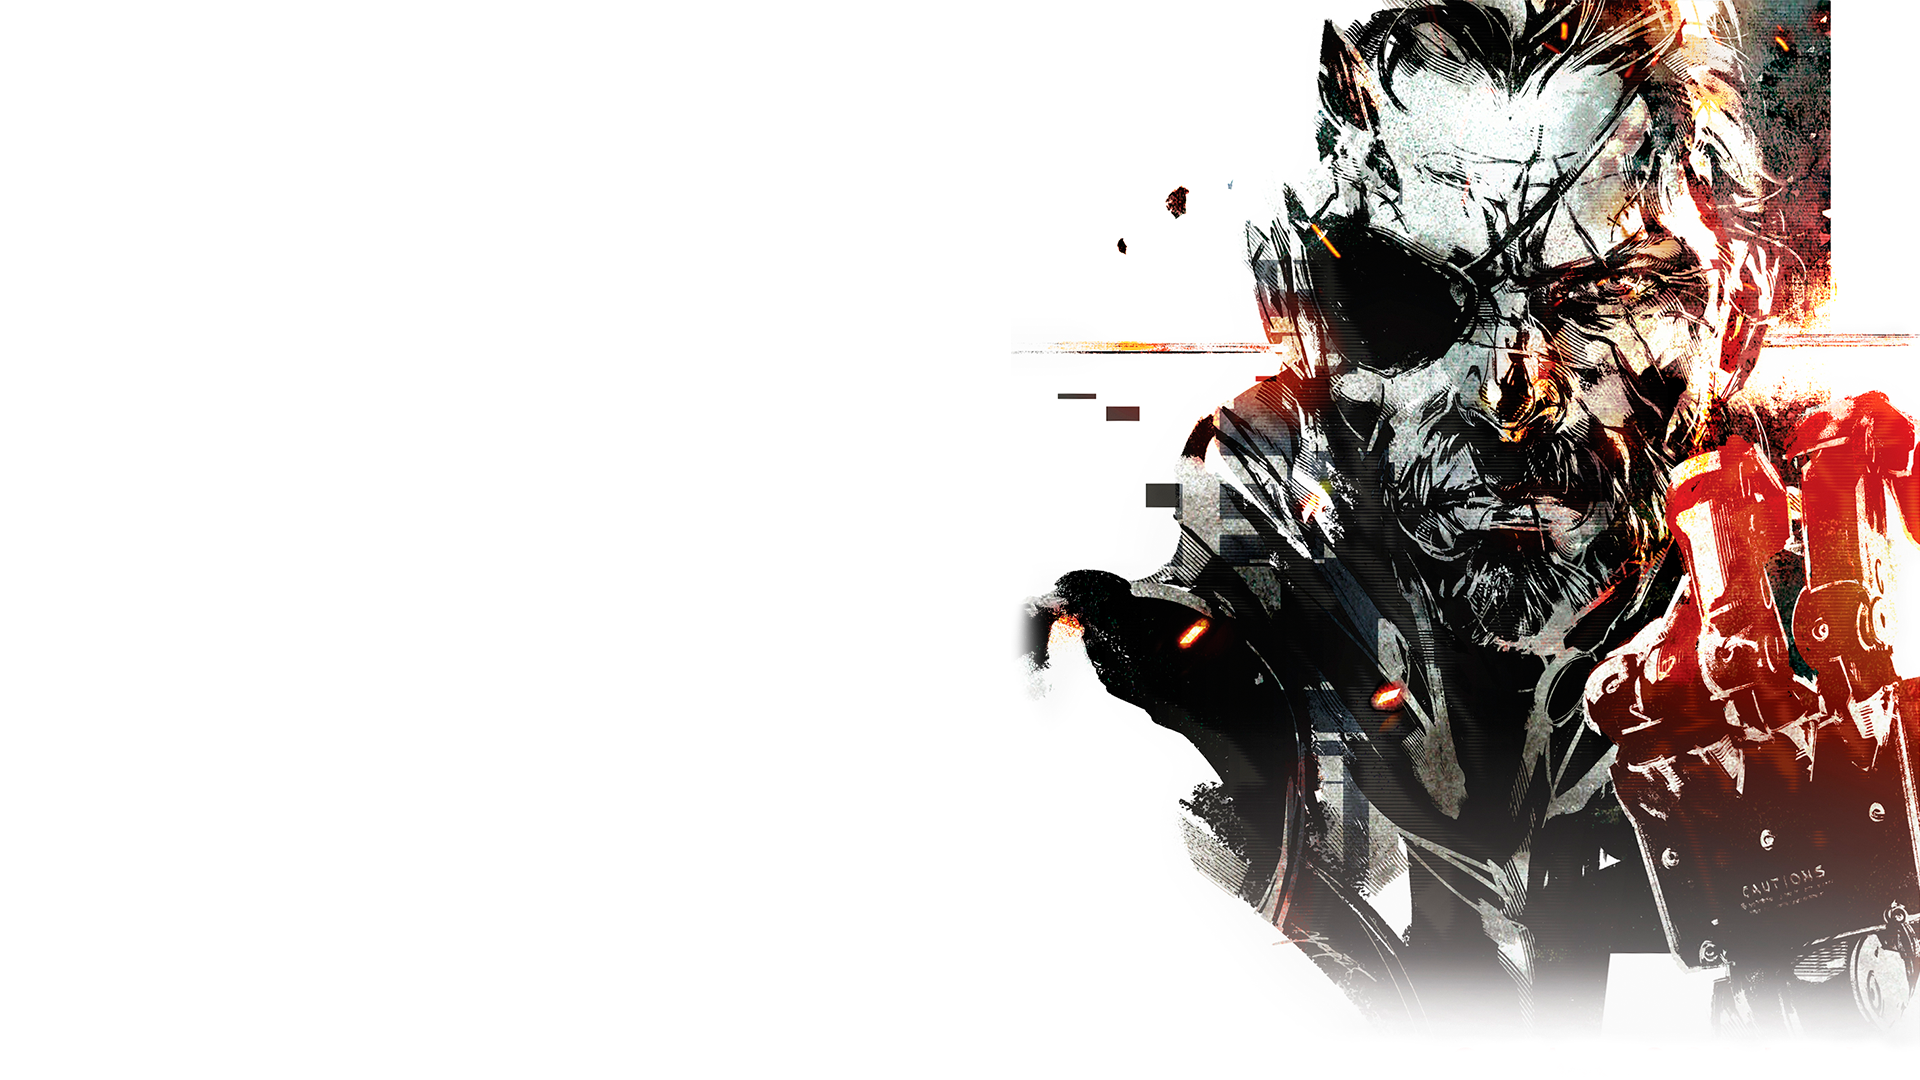 Metal Gear Solid V: The Phantom Pain Full HD Wallpaper And